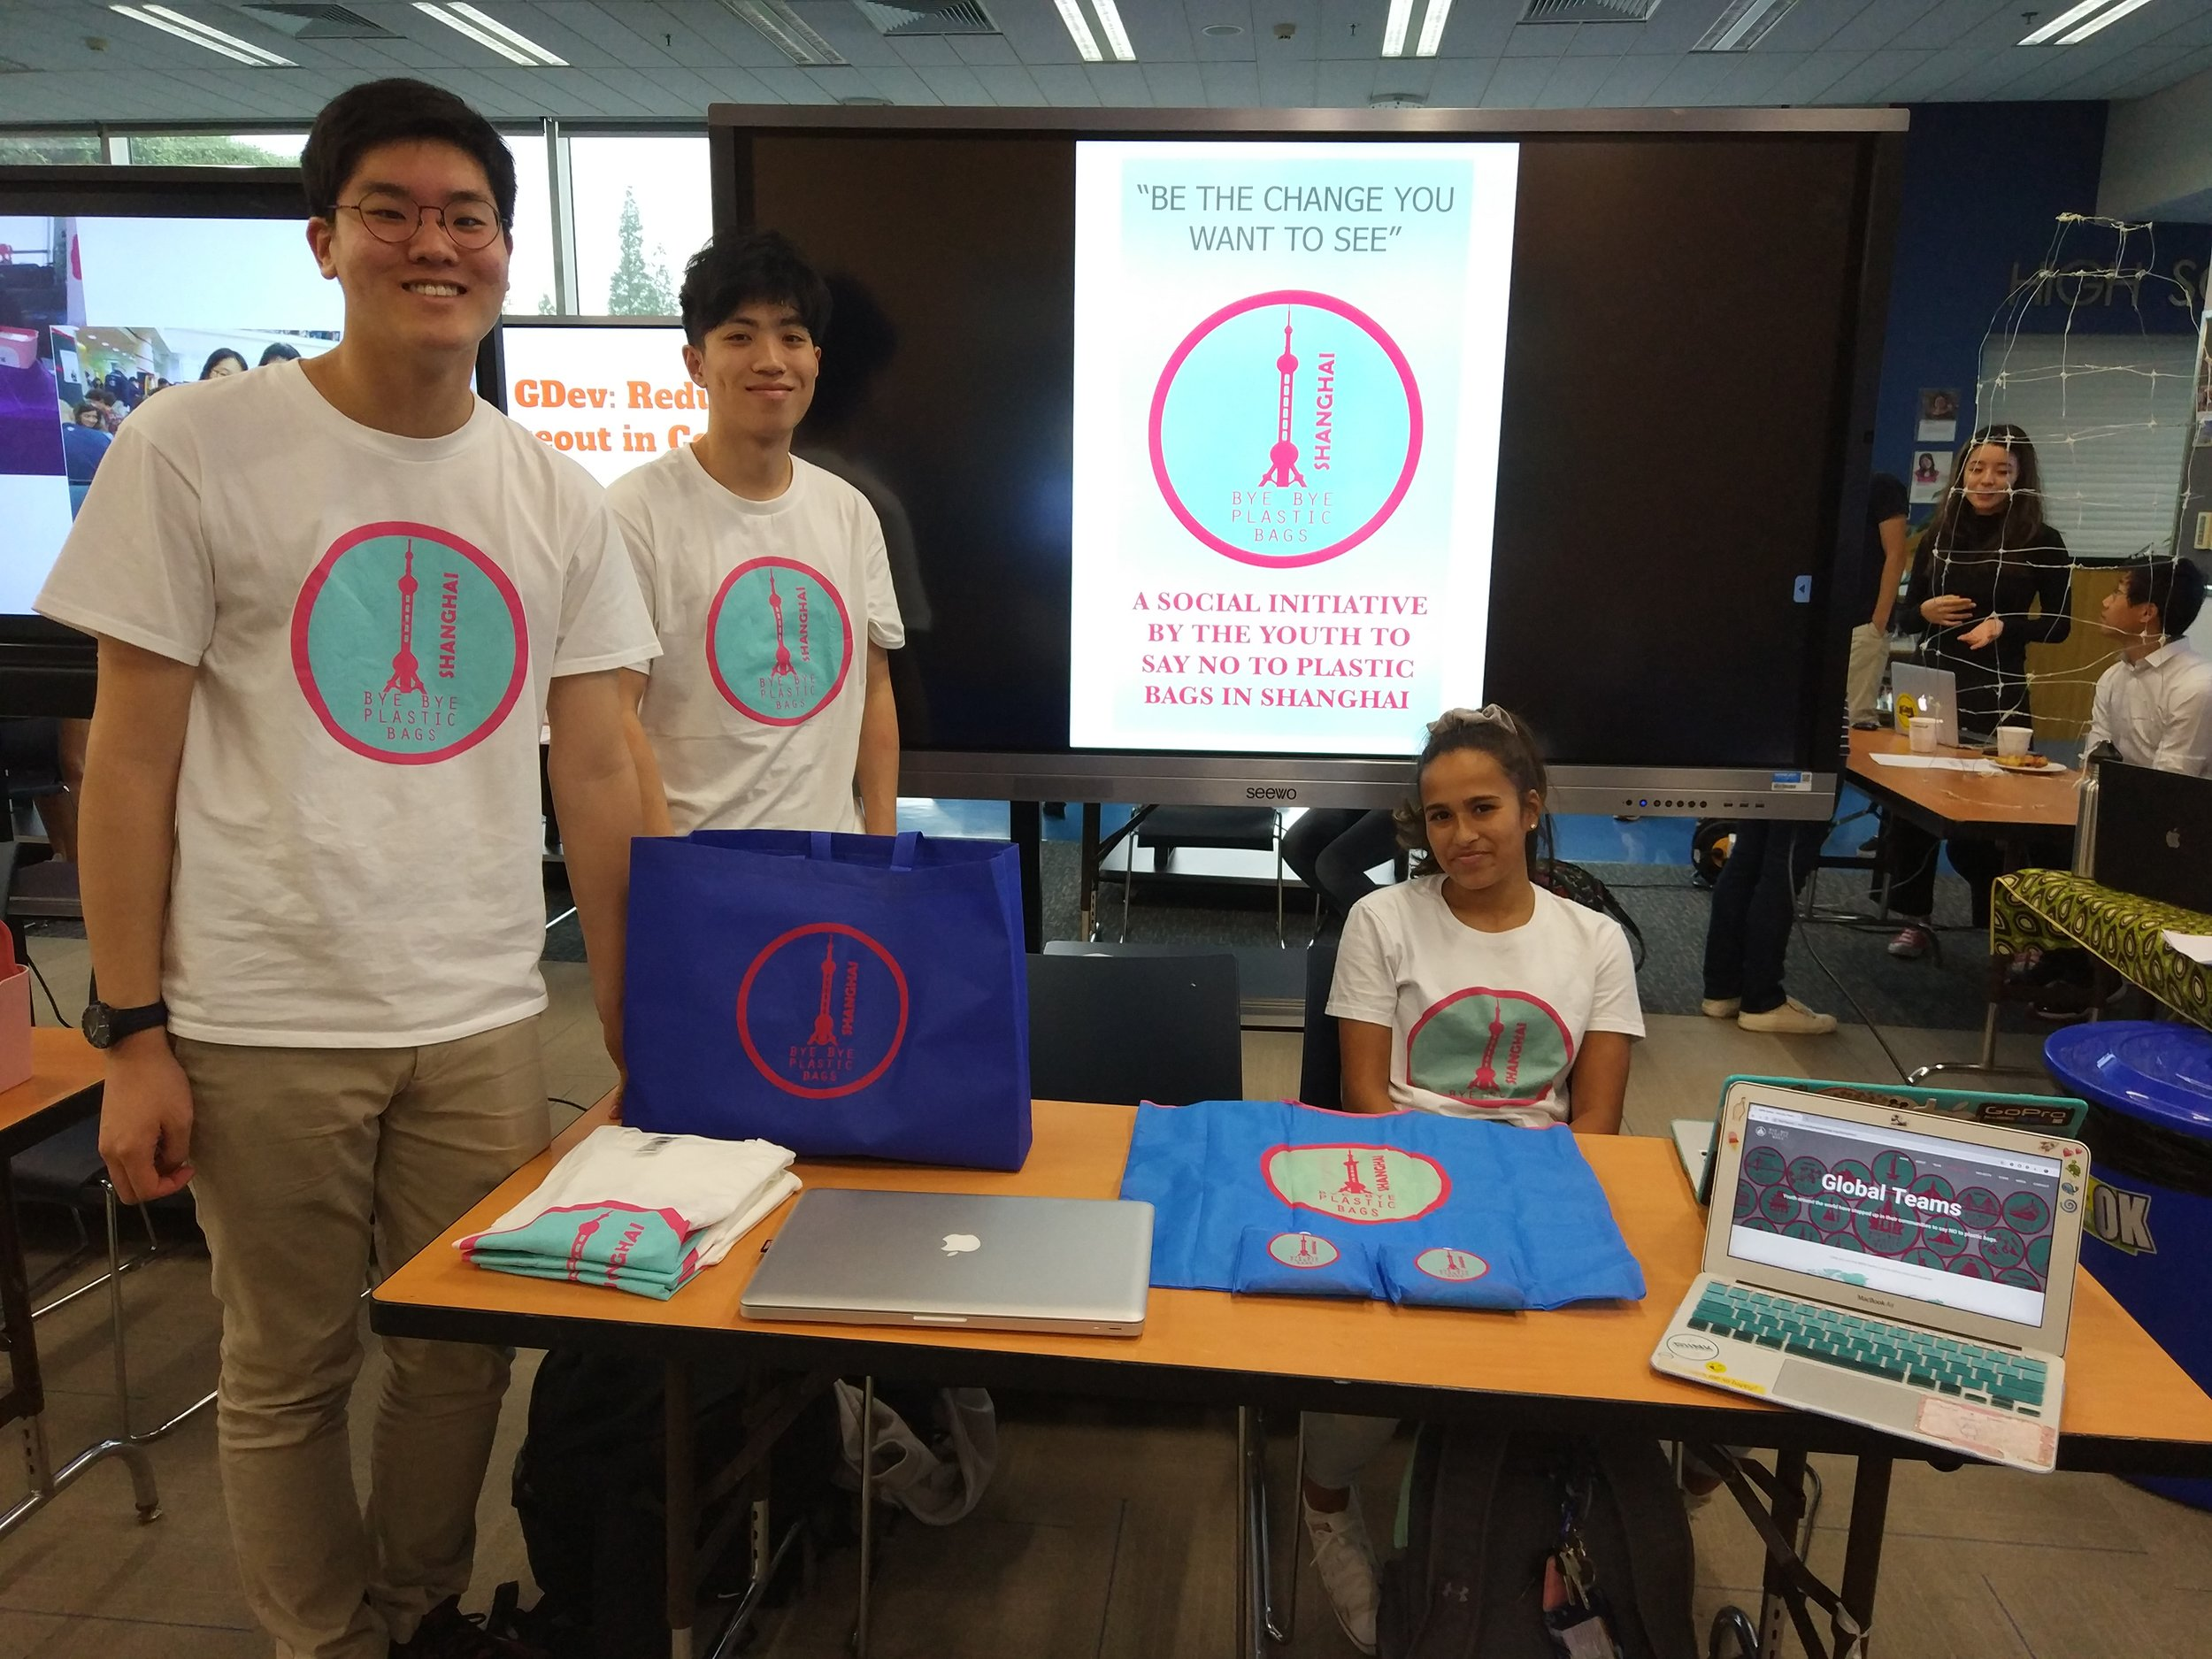 Students from the Global Issues Network's Bye Bye Plastic Bags group. Hoony K (left) won an inaugural Concordia Service Award for his work in founding the BBPB Shanghai chapter.